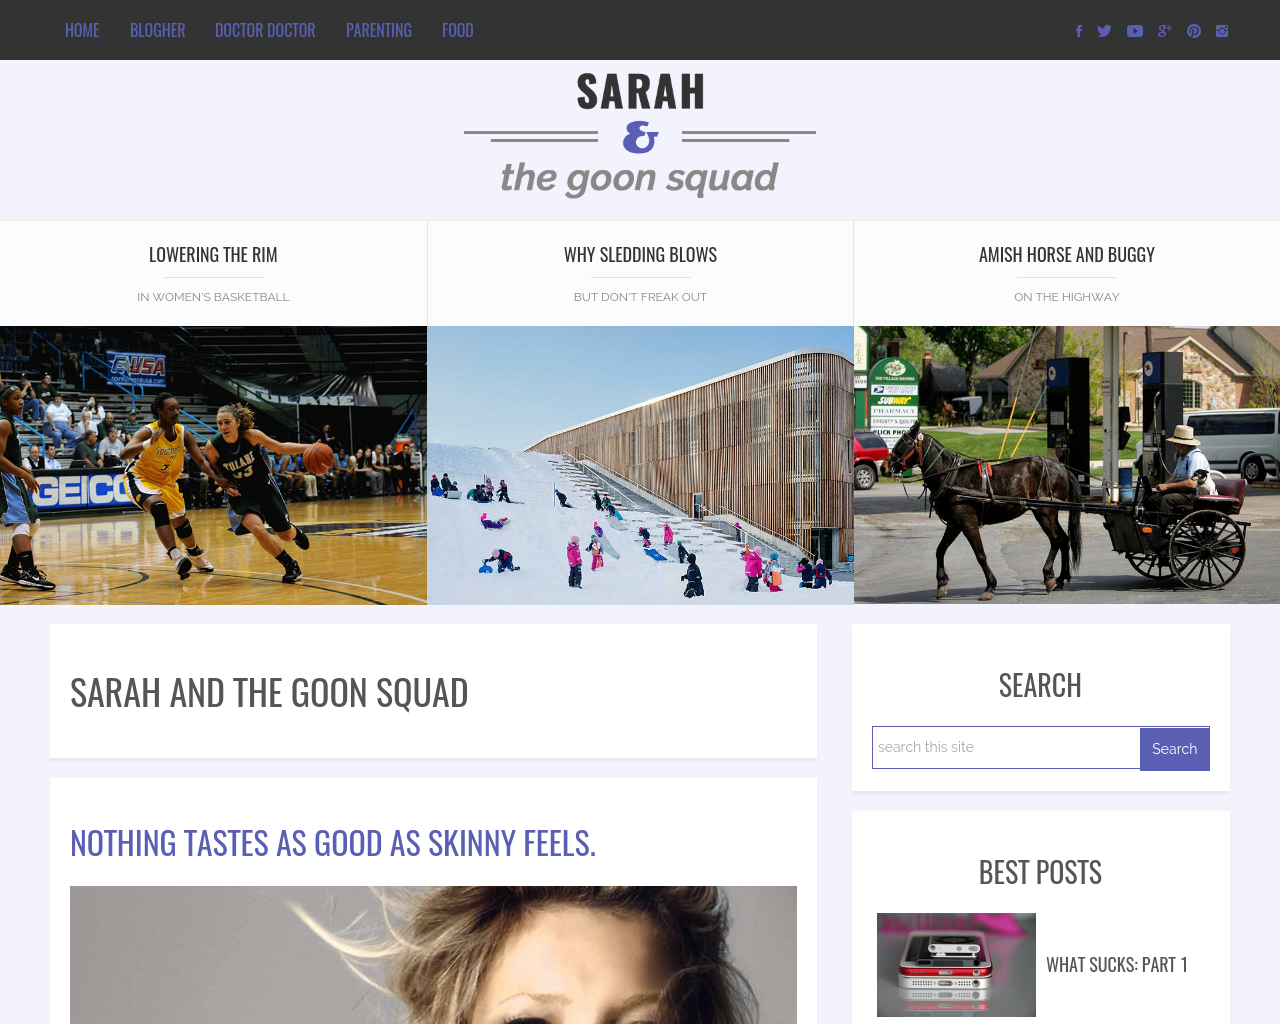 Sarah-And-The-Goon-Squad-Advertising-Reviews-Pricing